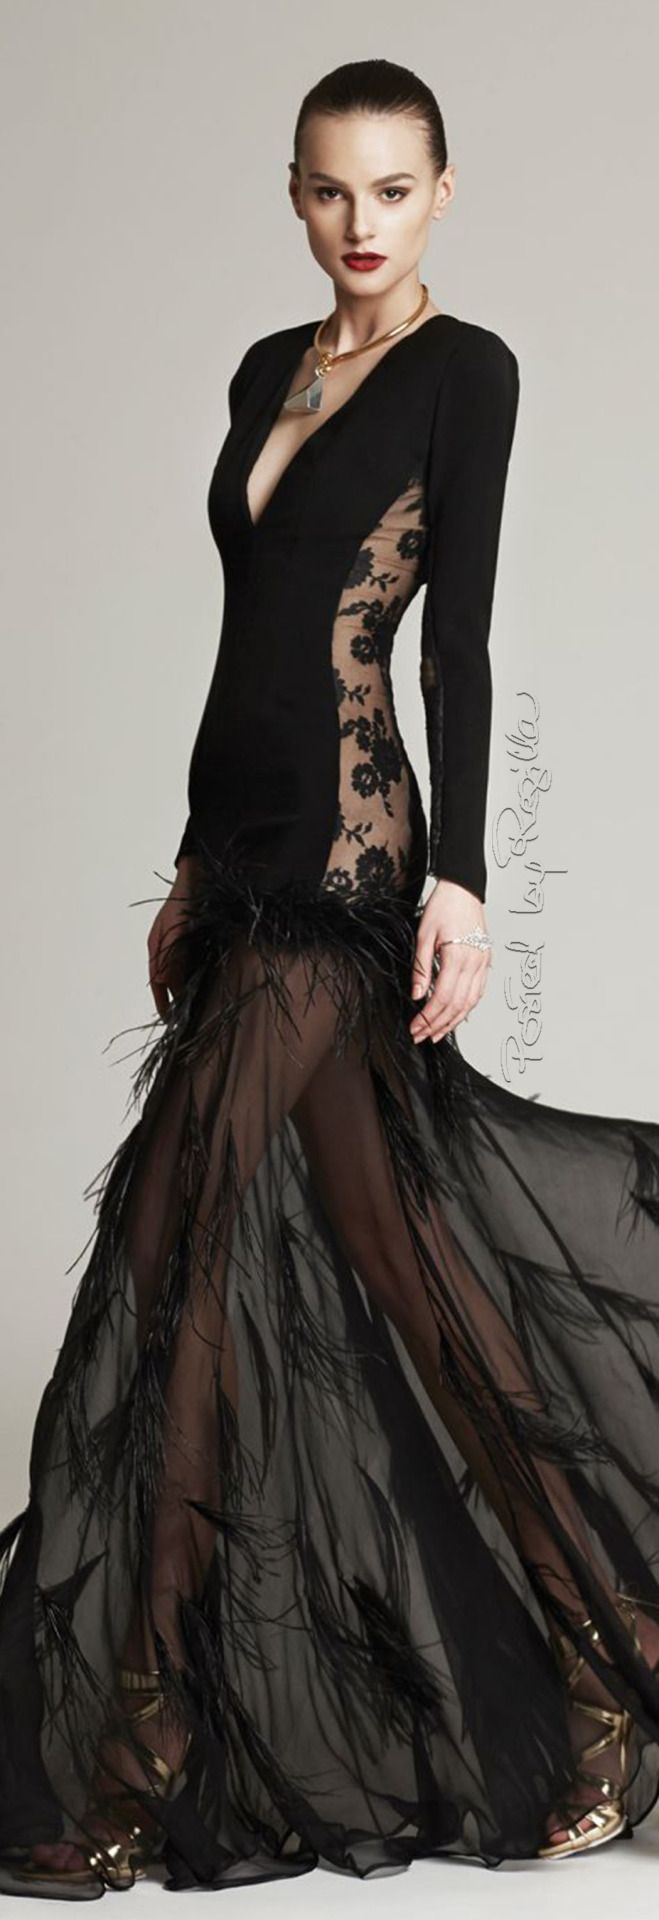 Christina Savulescu ~ Black Long Sleeve Gown w Sheer Embroidered Side Panels + Skirt 2015.